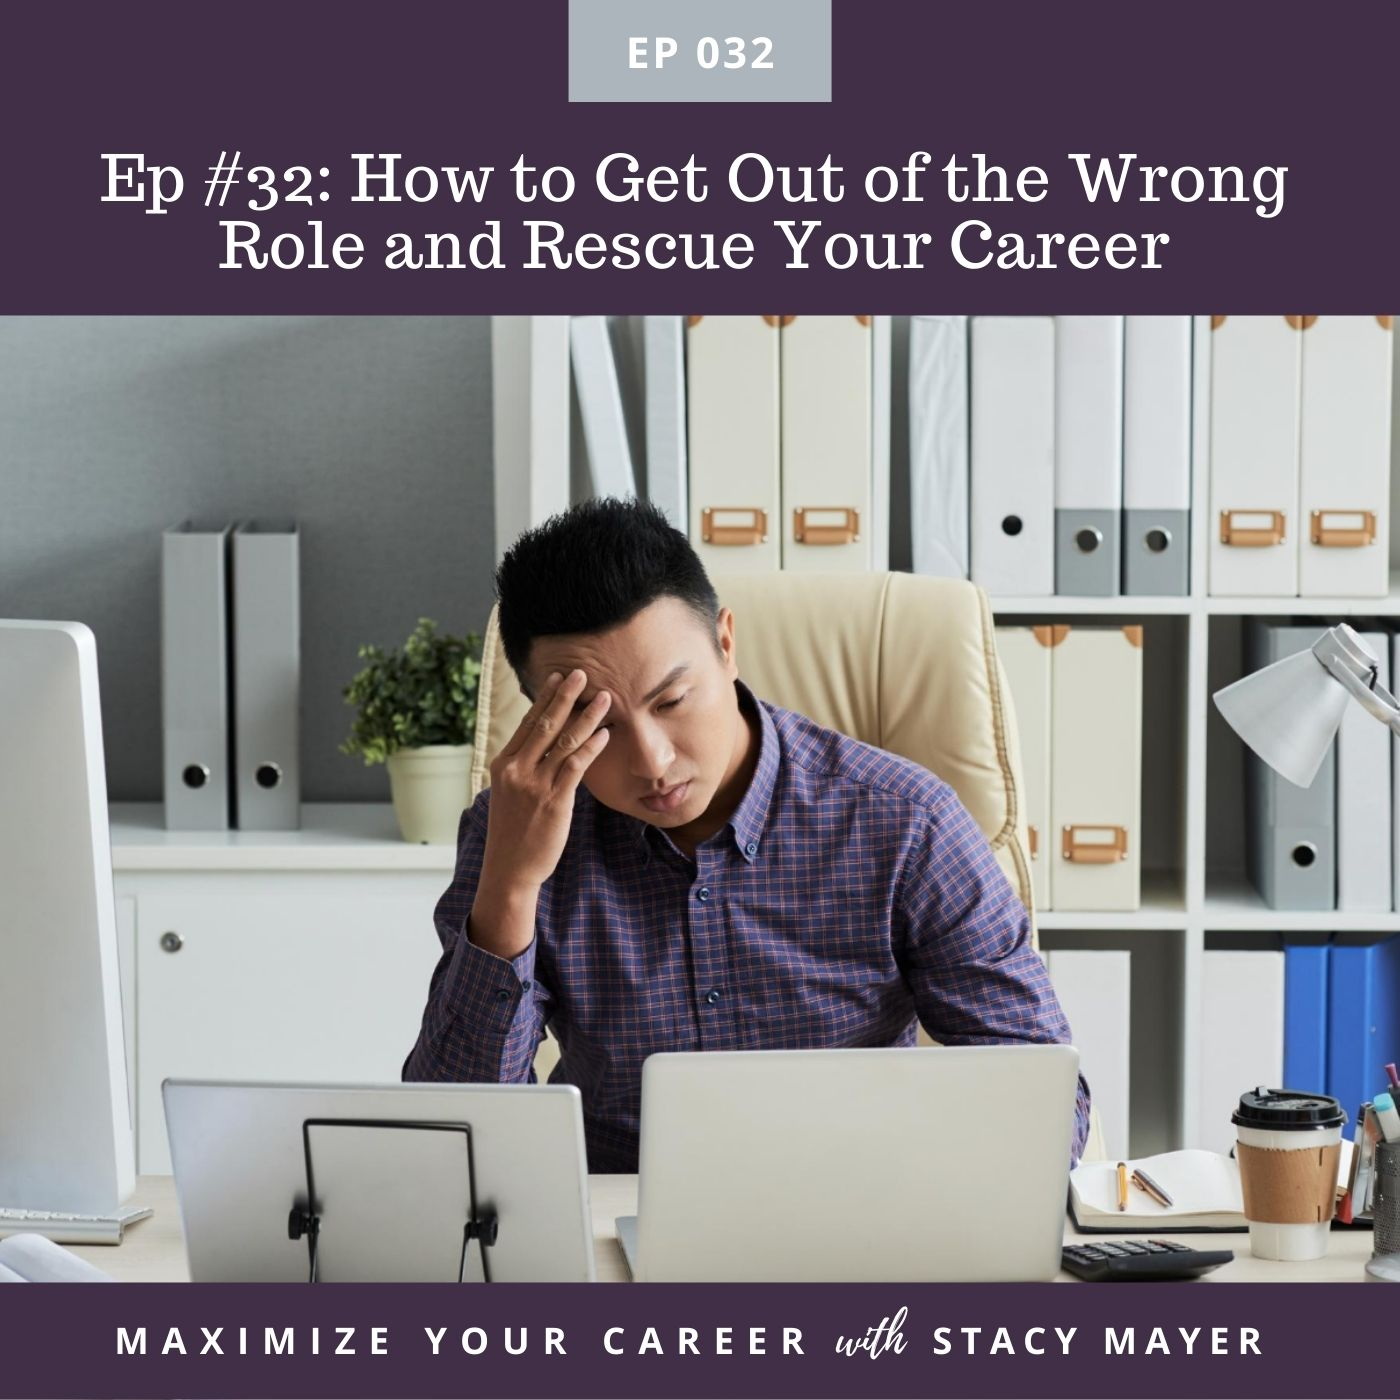 Episode image - Ep #32 How to Get Out of the Wrong Role and Rescue Your Career